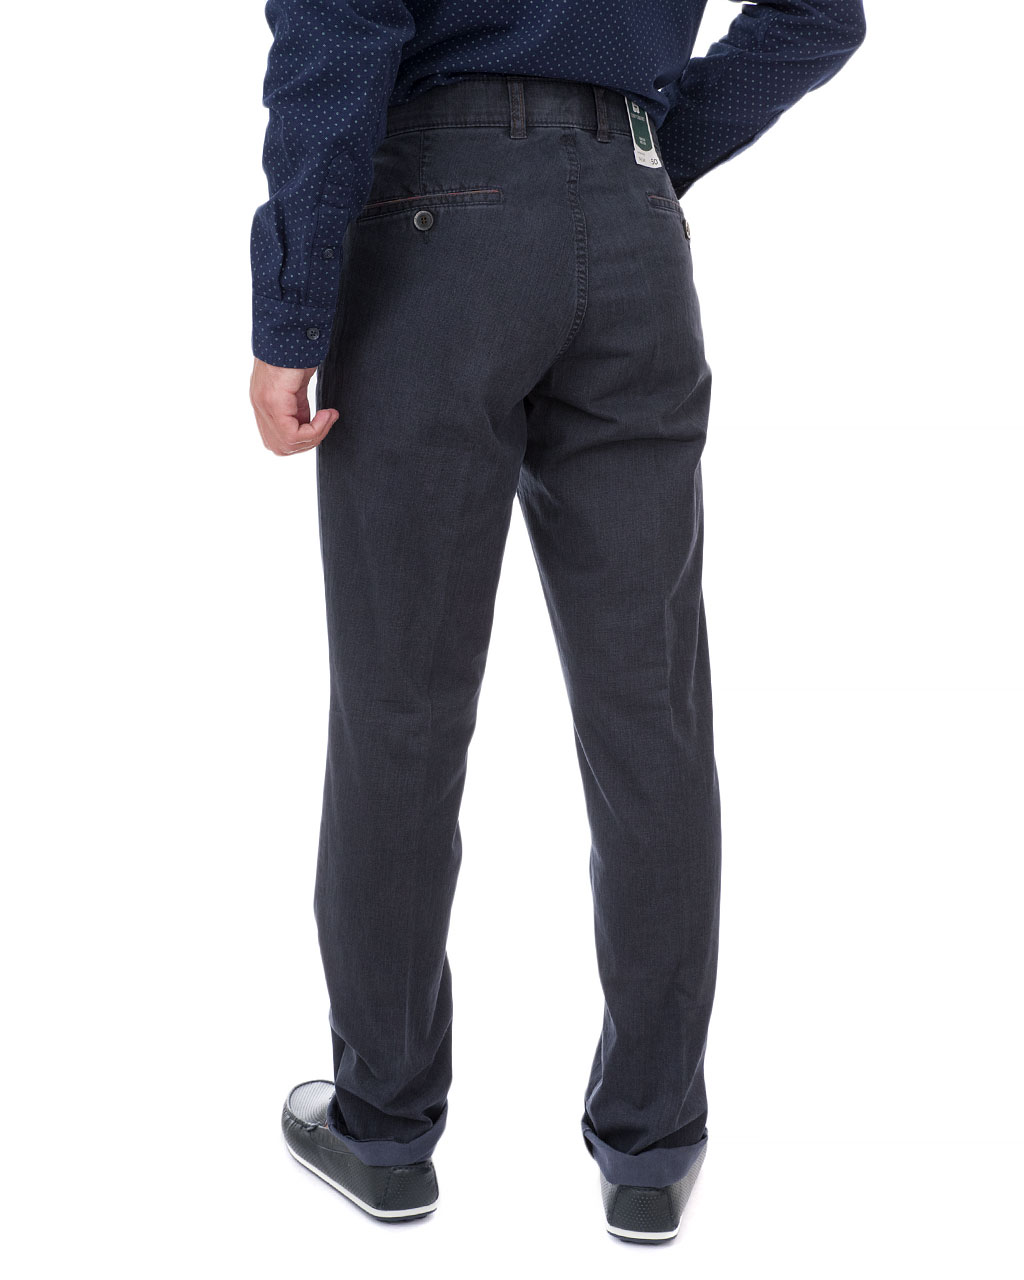 Men's trousers Garvey 6801-44/19-20 (5)